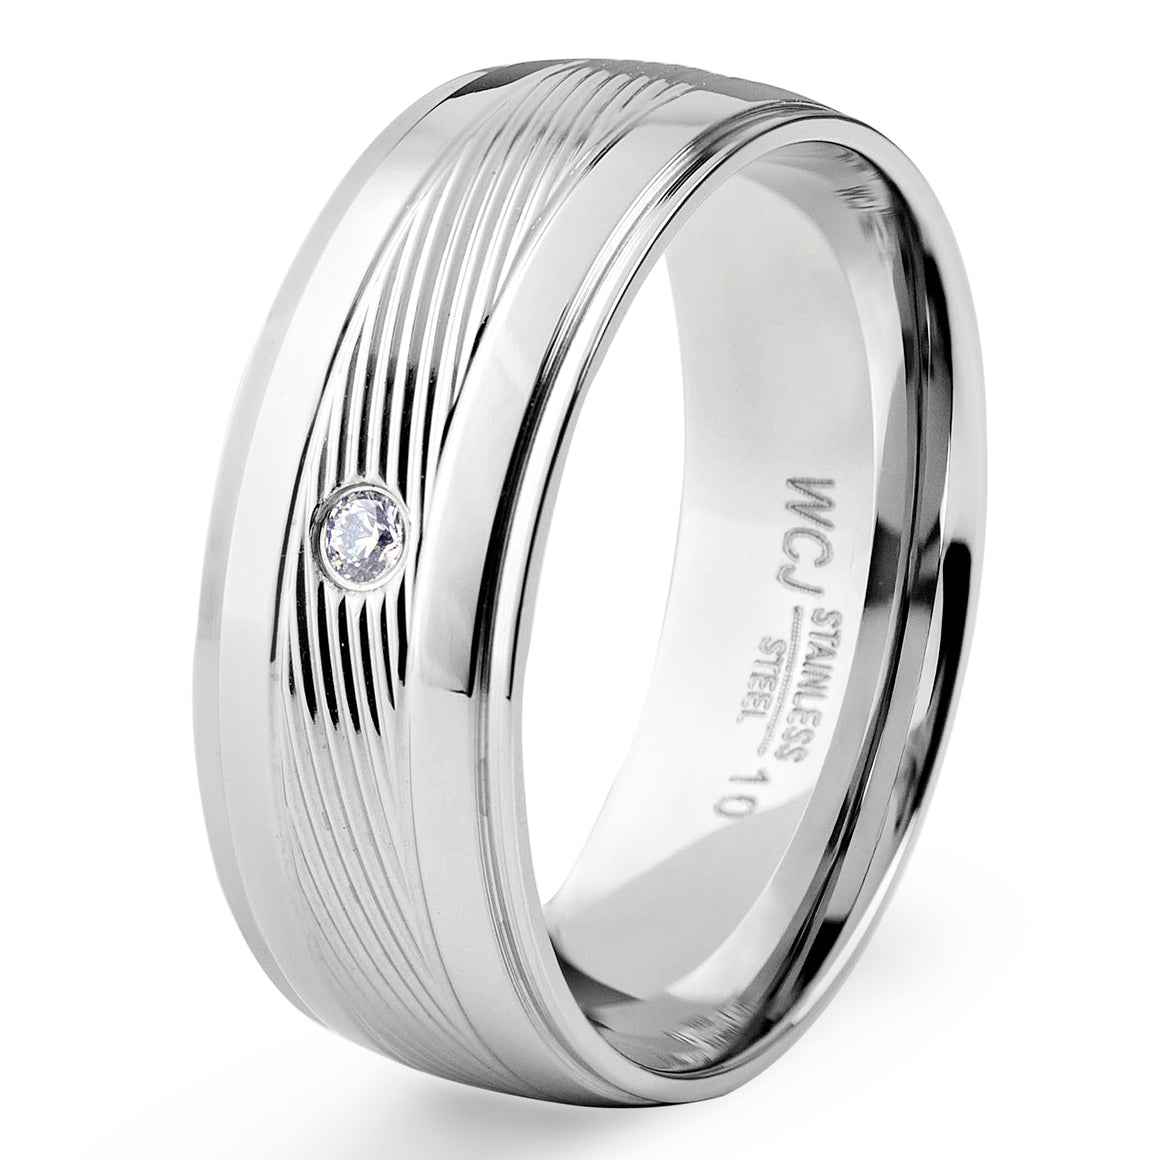 Men's Two-Tone Stainless Steel Polished Cubic Zirconia Grooved Ring